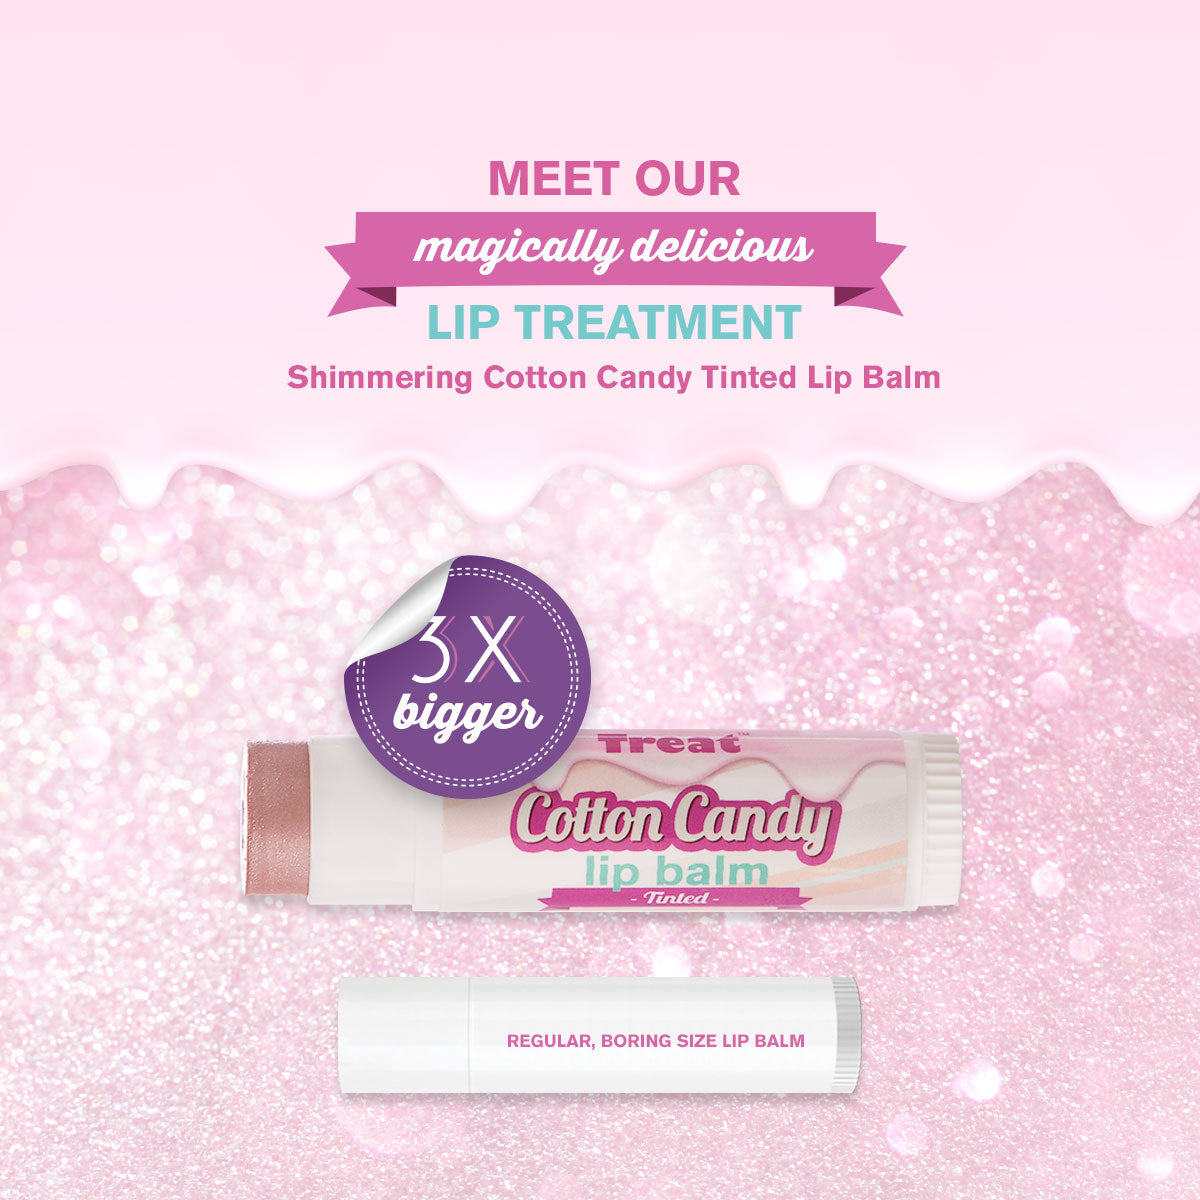 Shimmering Cotton Candy TInted Lip Balm